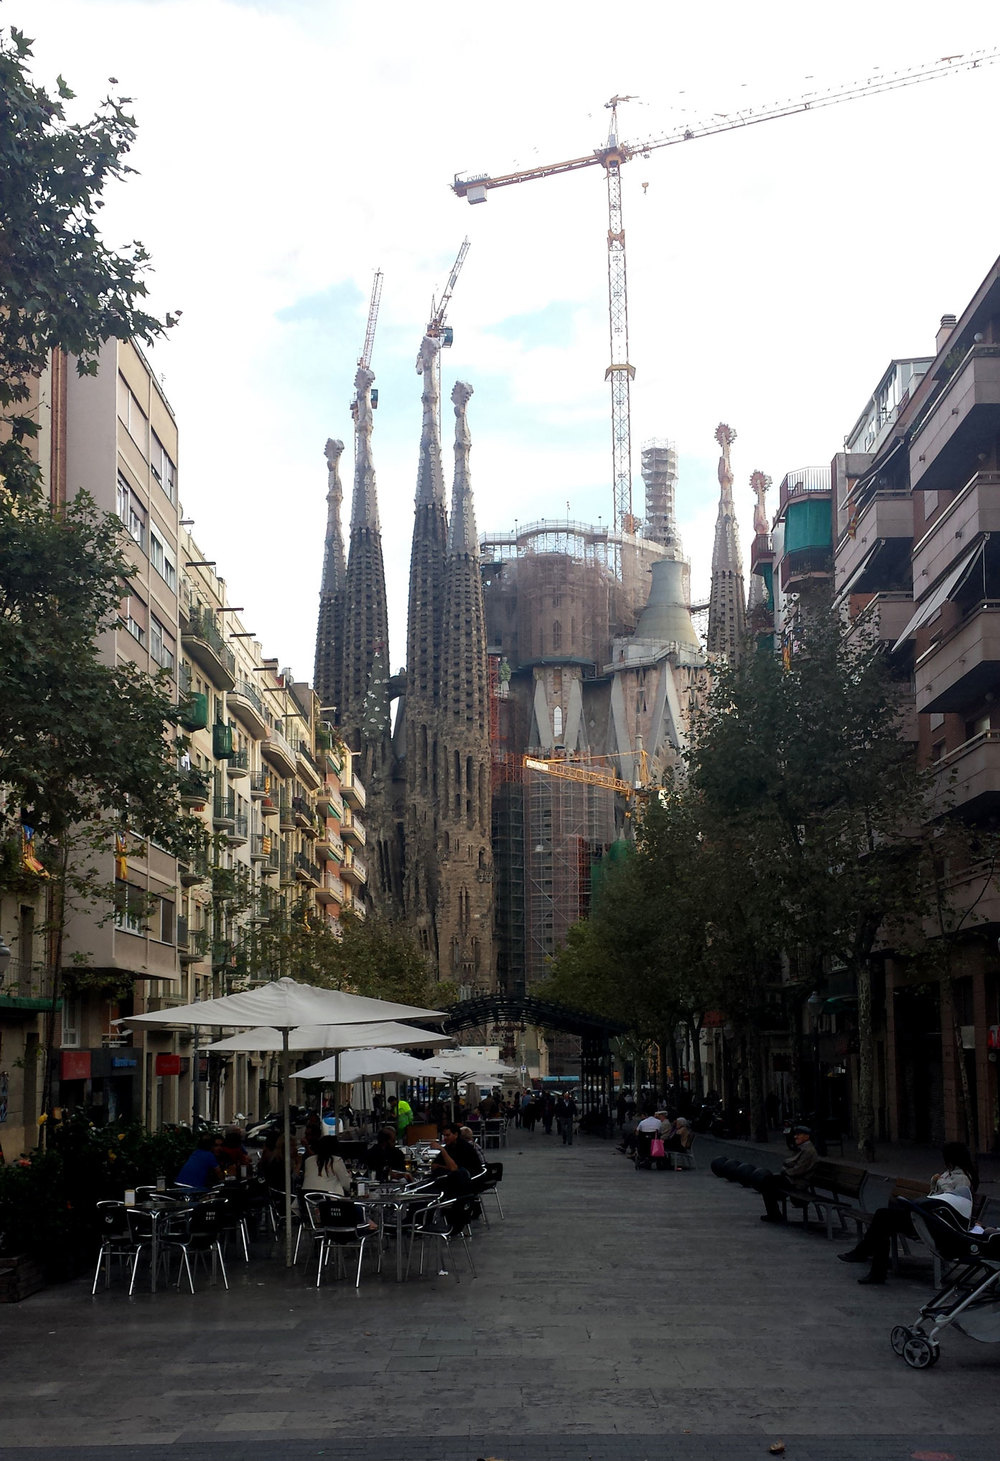 From Gaudi Avenue